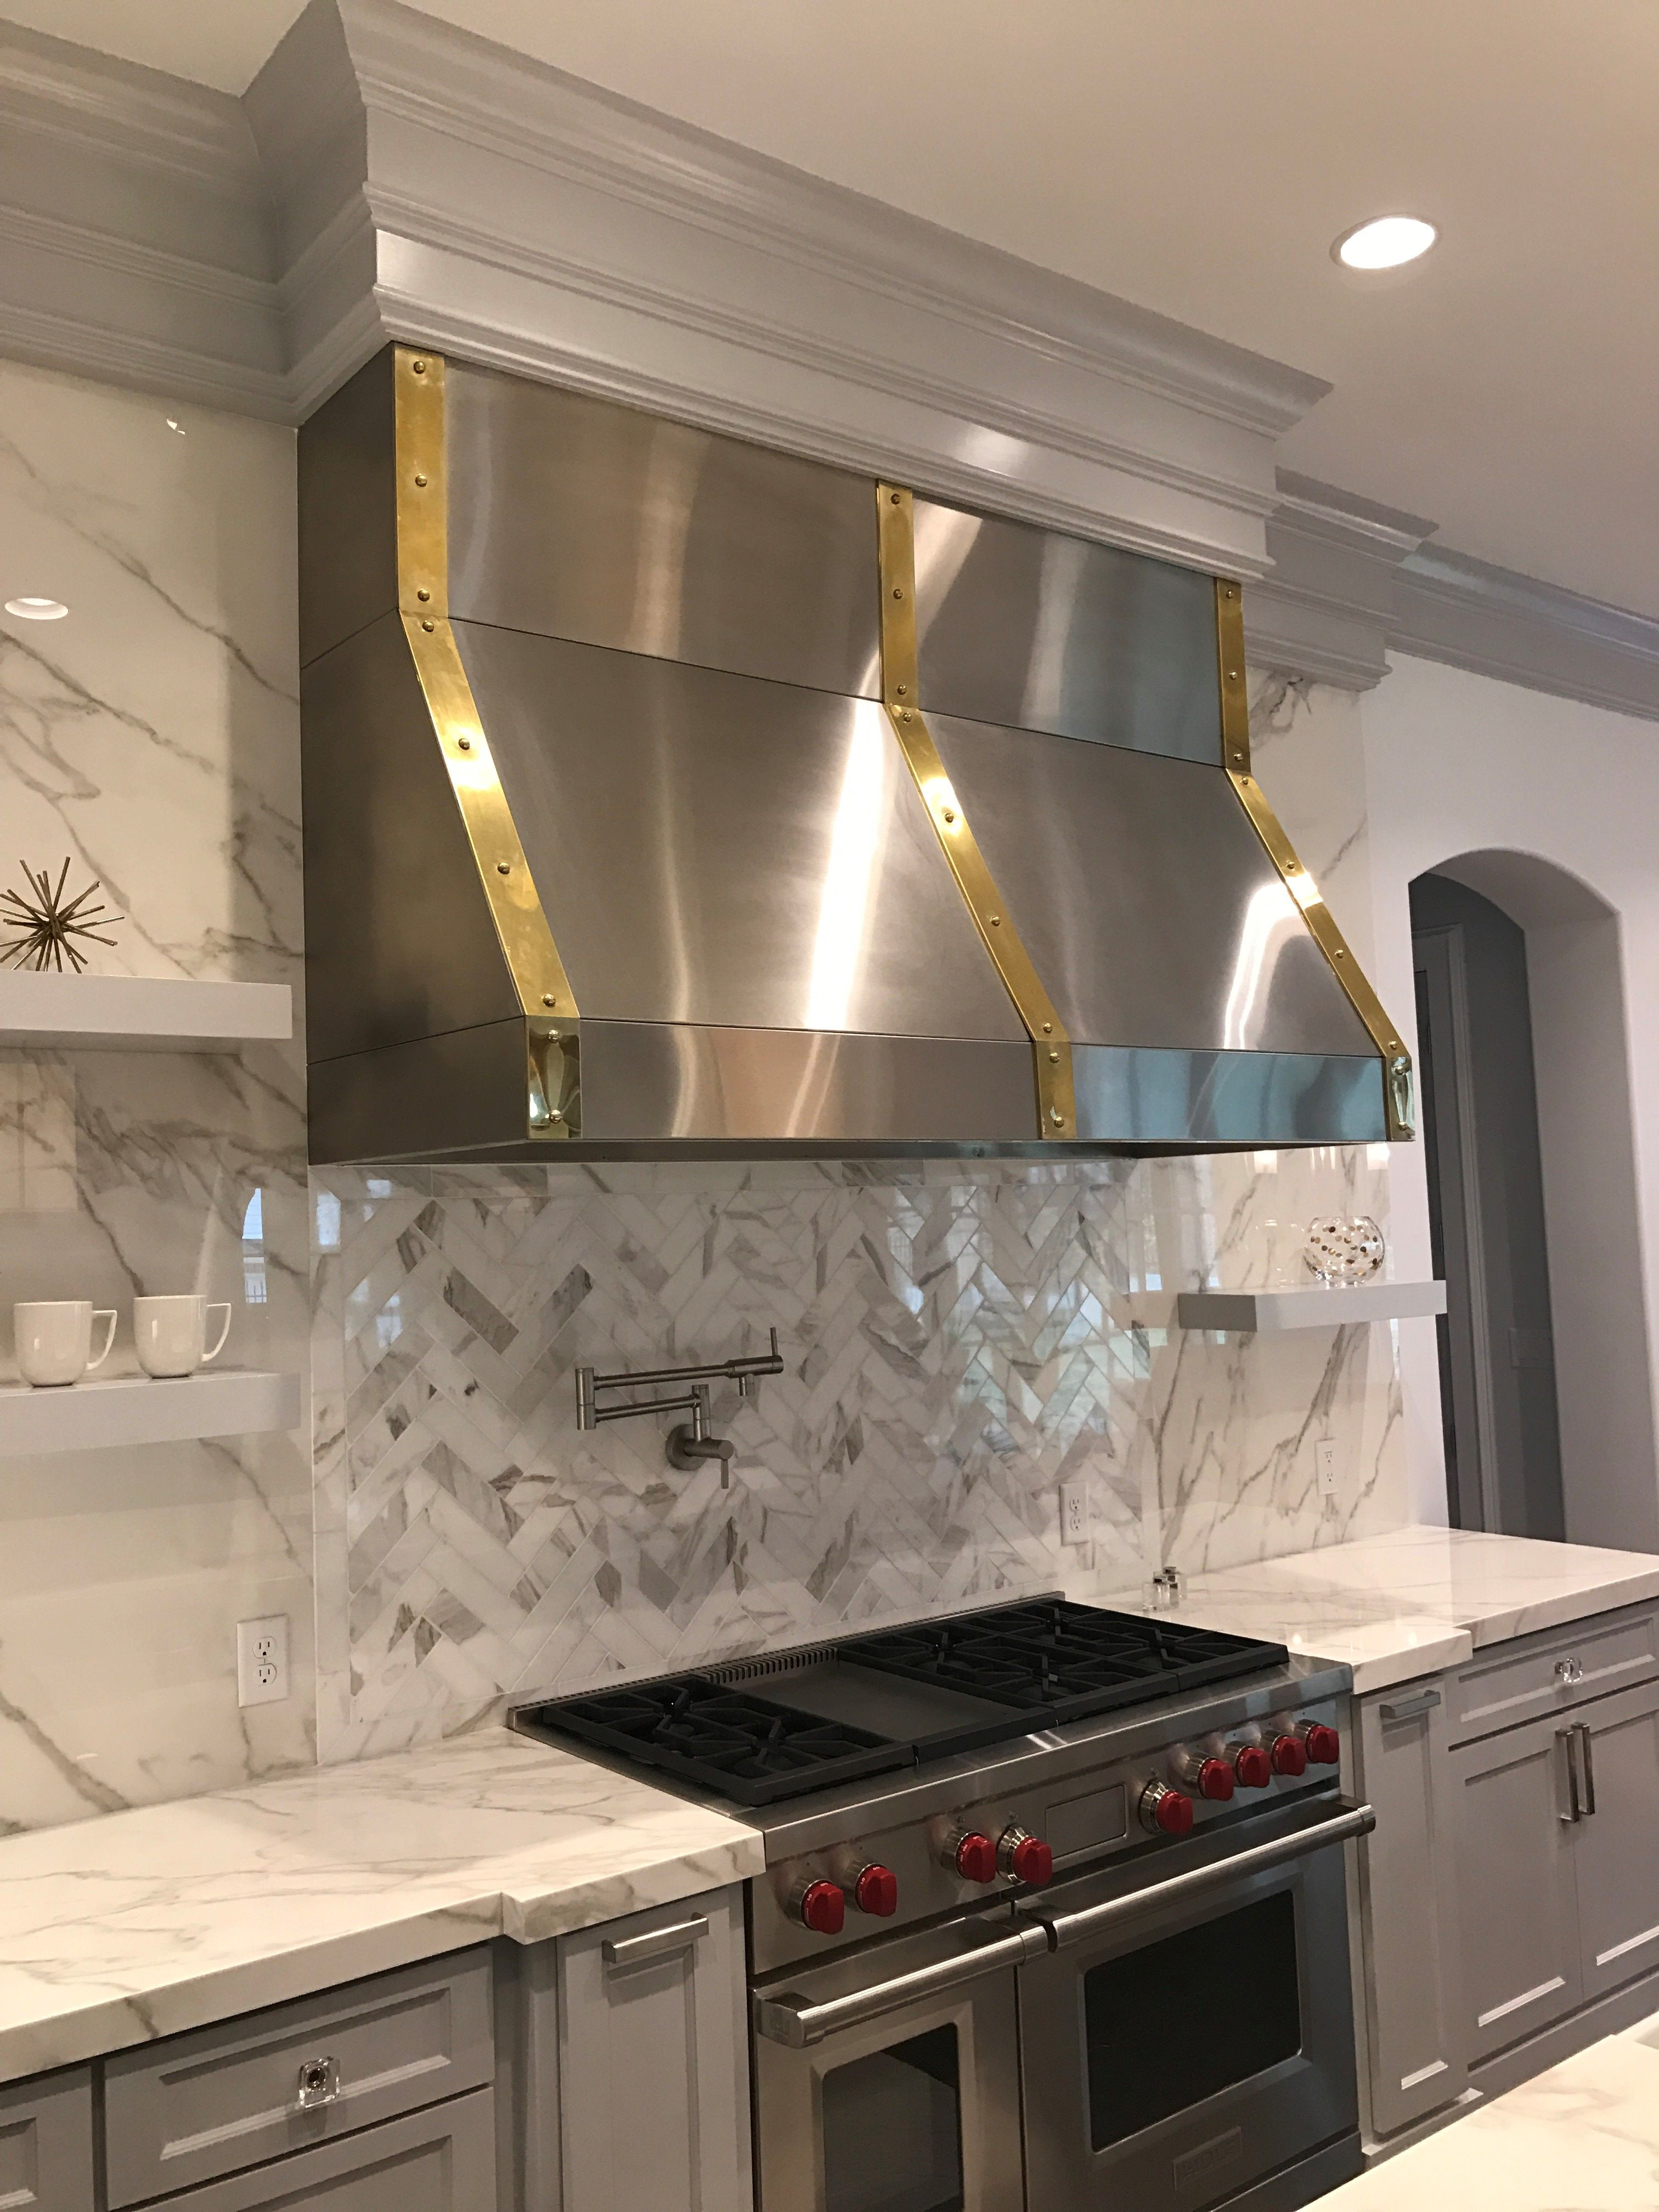 Handcrafted Custom Brushed Finish Stainless Steel Vent Hood With Brass Trim Bands Venthoods Luxury Kitchen Tiles Design Kitchen Design Color Kitchen Interior